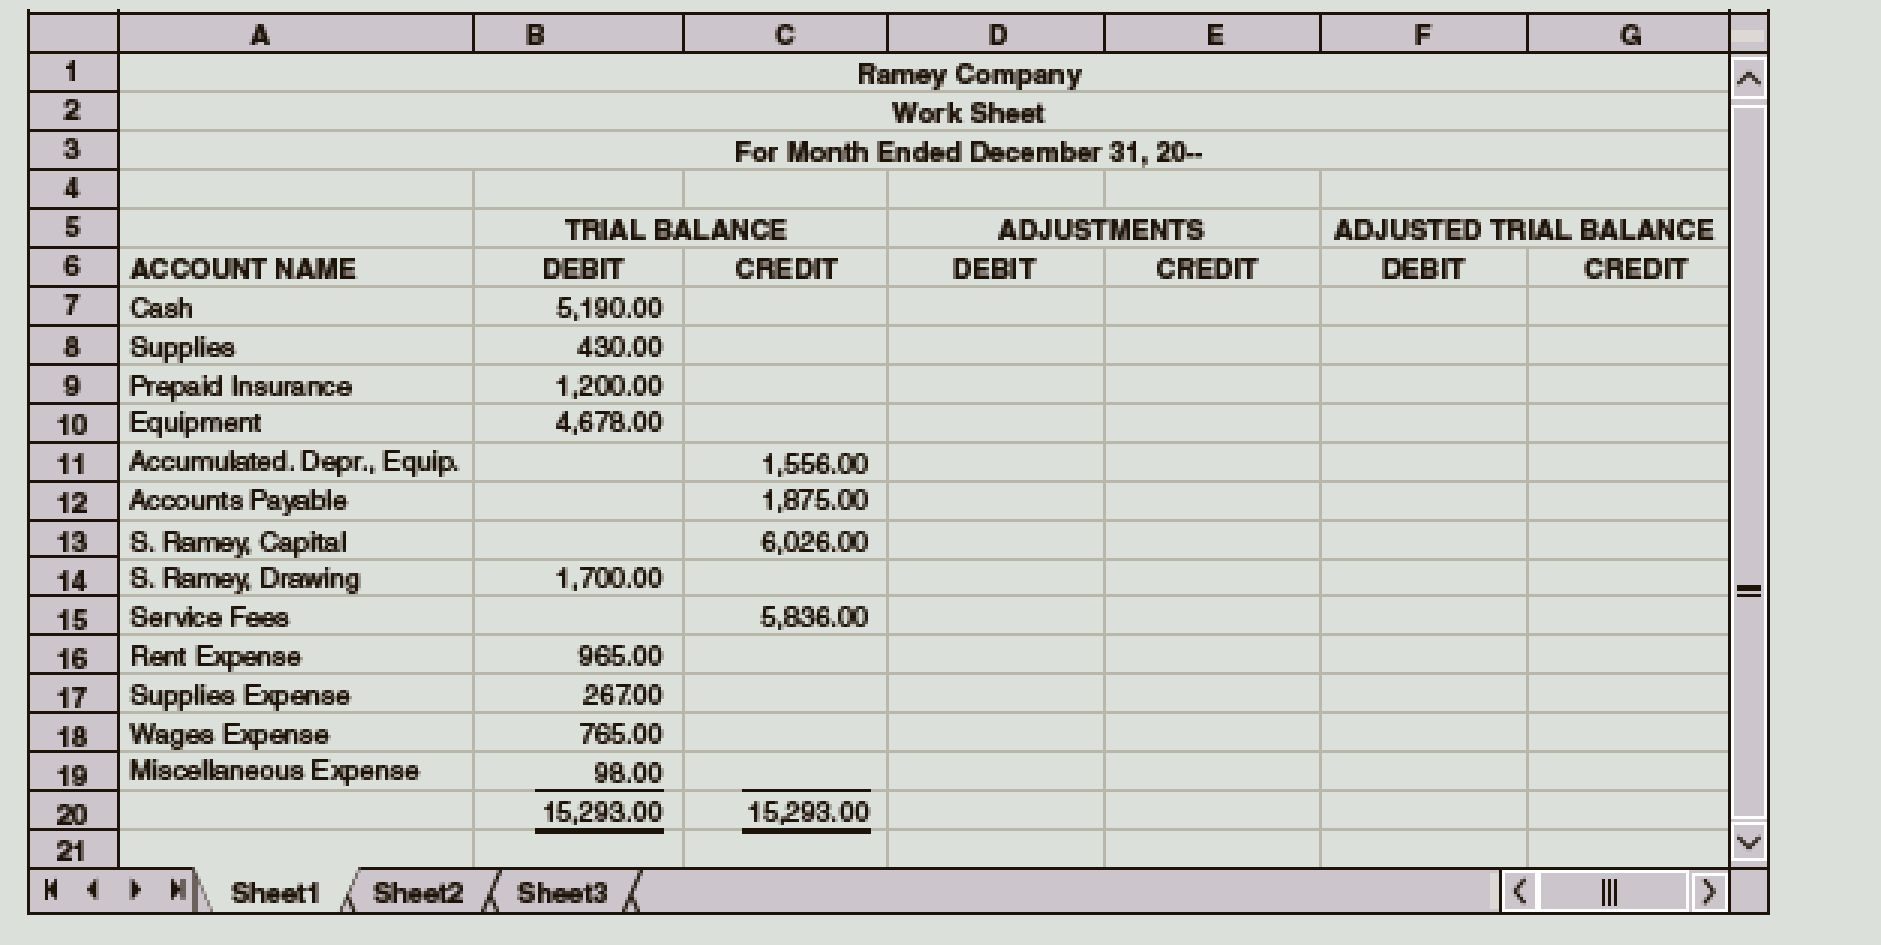 Complete The Work Sheet For Ramey Company Dated December